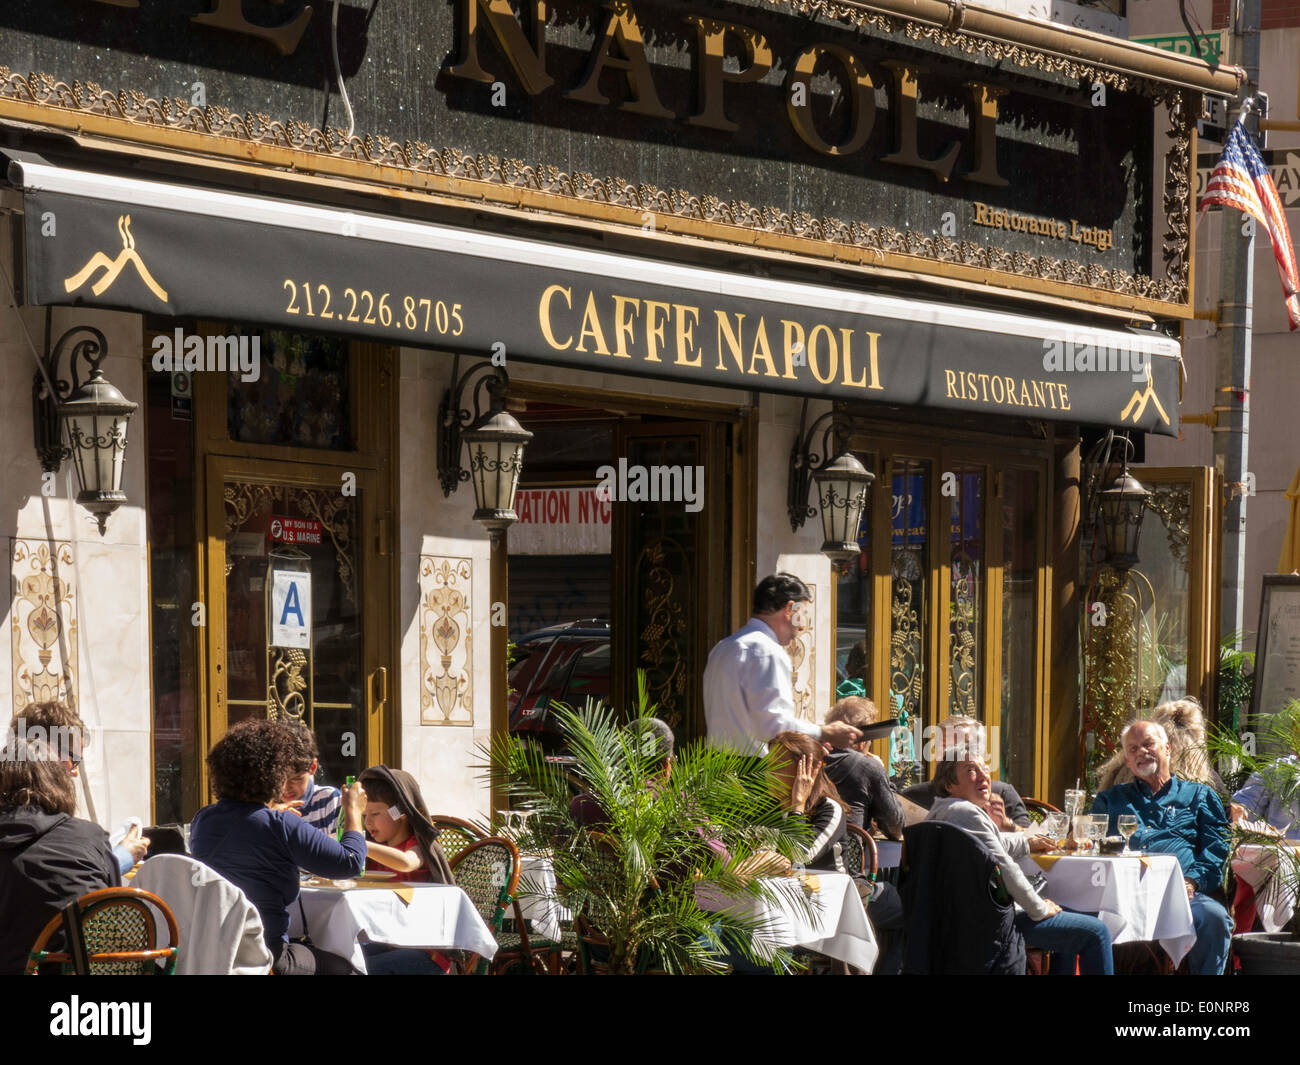 Cafe Napoli Little Italy New York